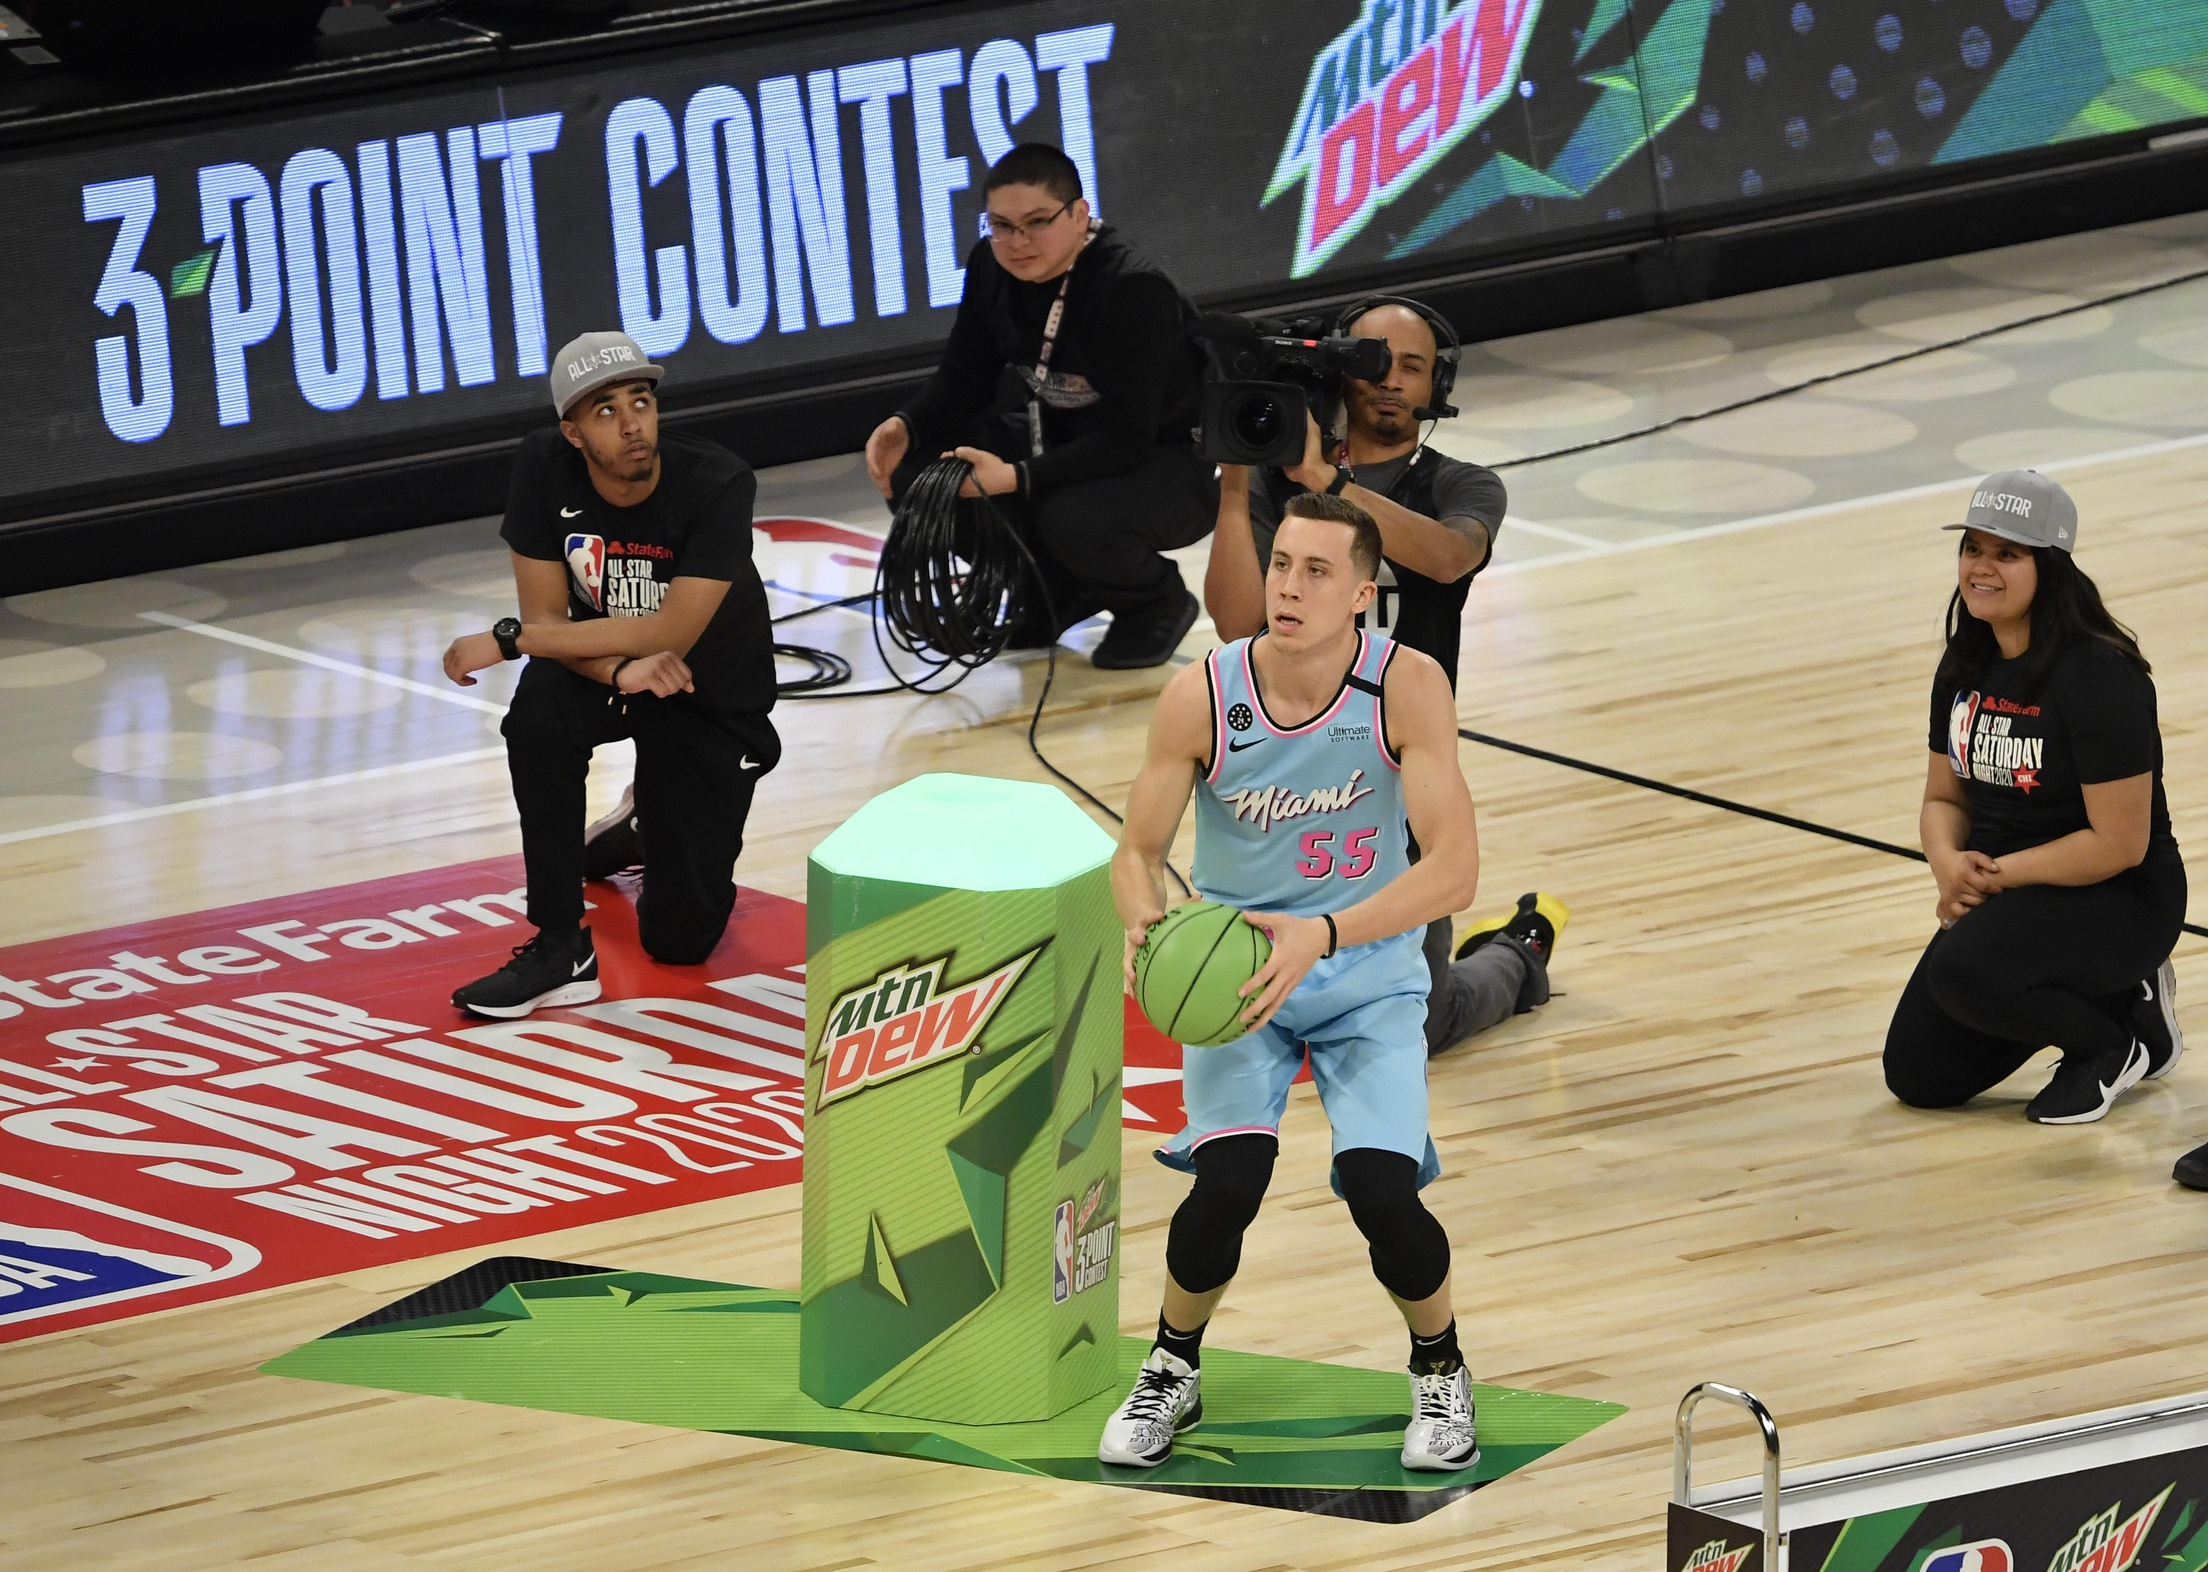 Heat forward Duncan Robinson bows out in the first round of 3-point contest